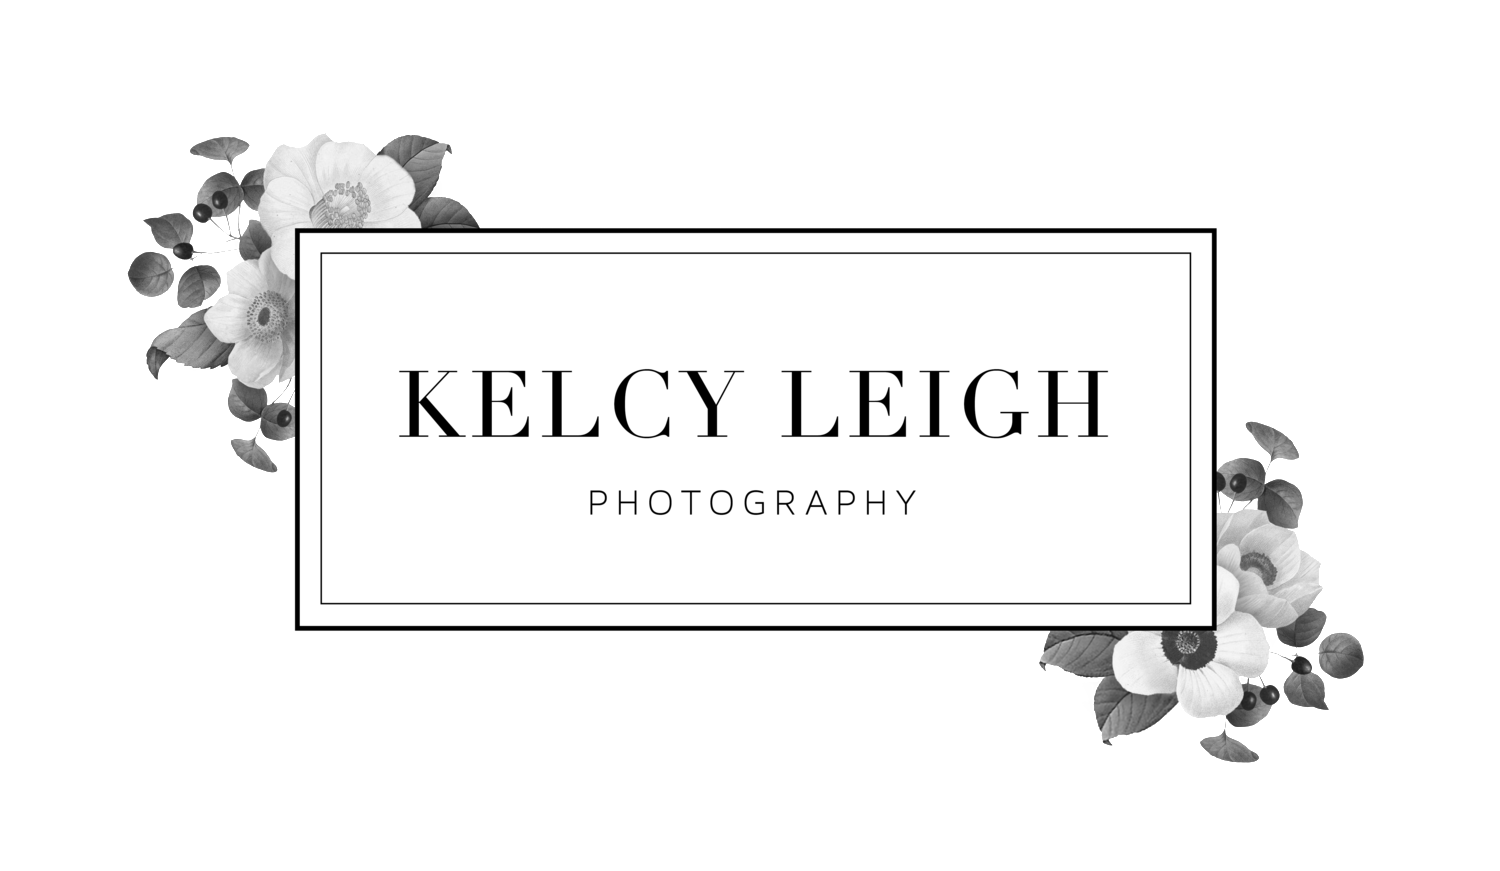 Kelcy Leigh Photography